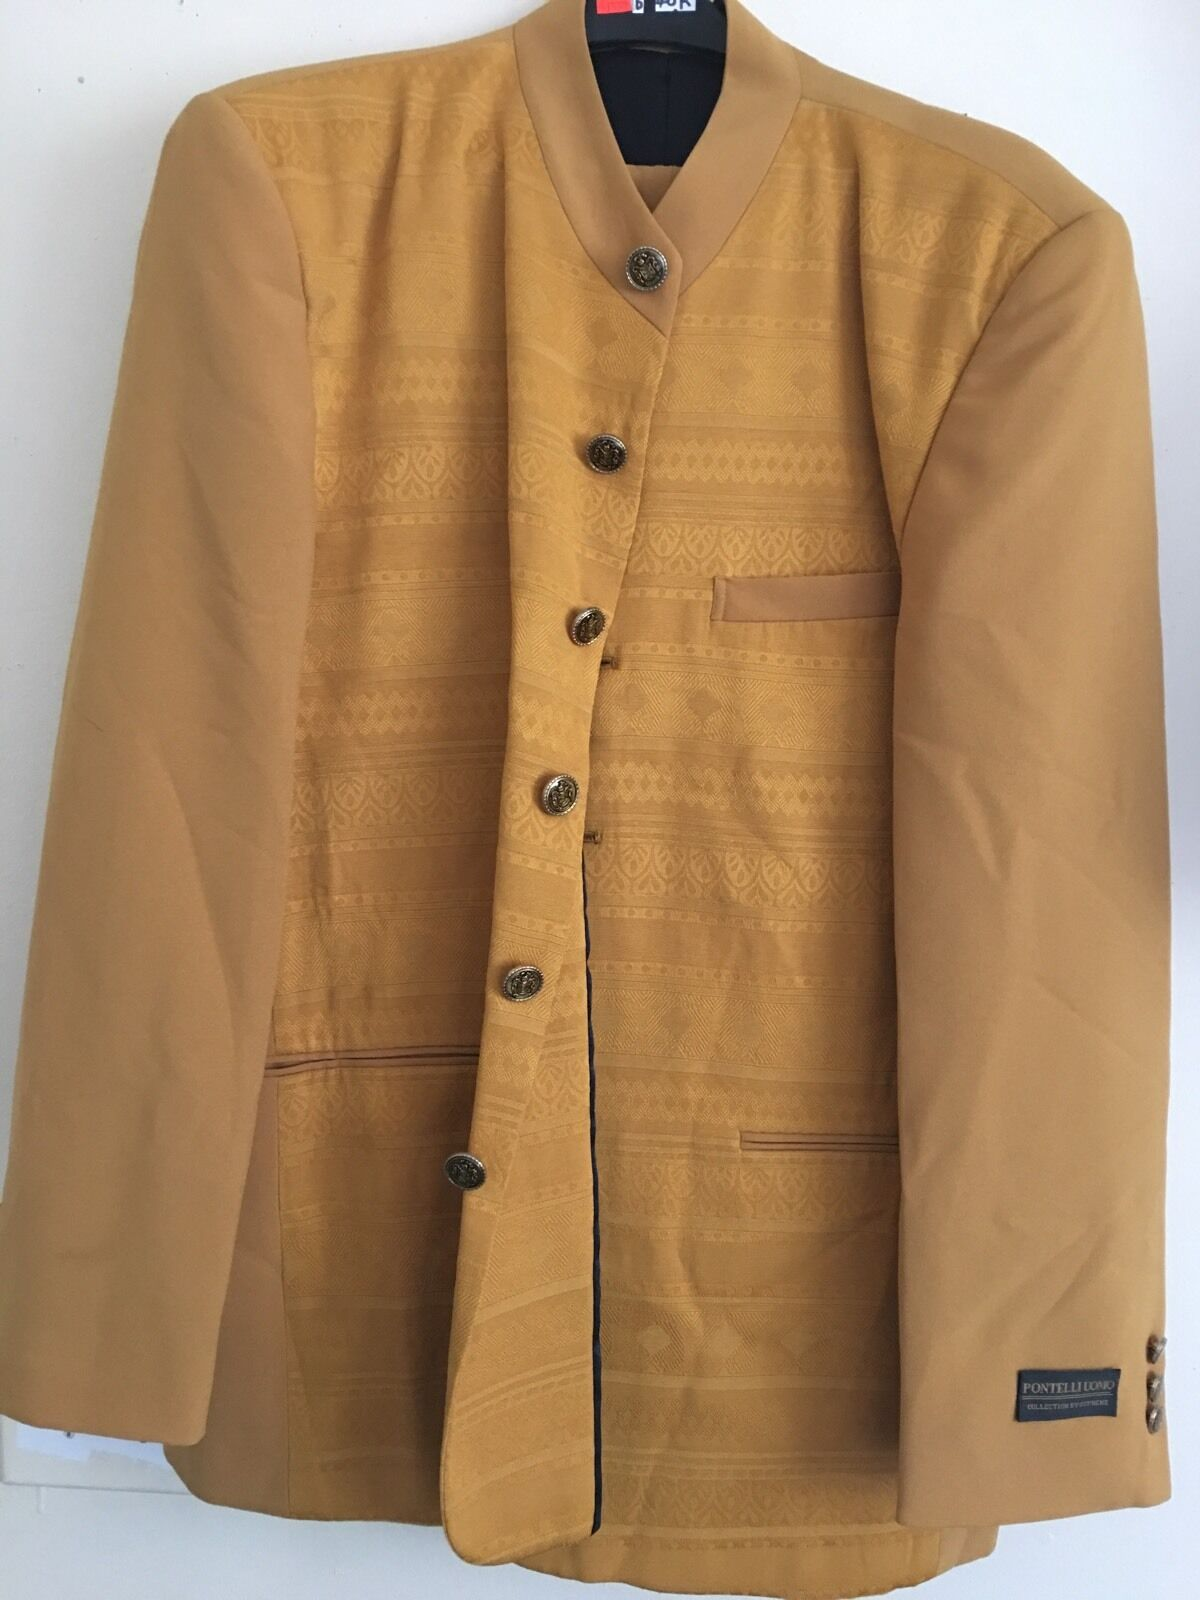 Pontelli men Collection By Supreme Mustard colord Men's Suit- Size 40R; 33 34